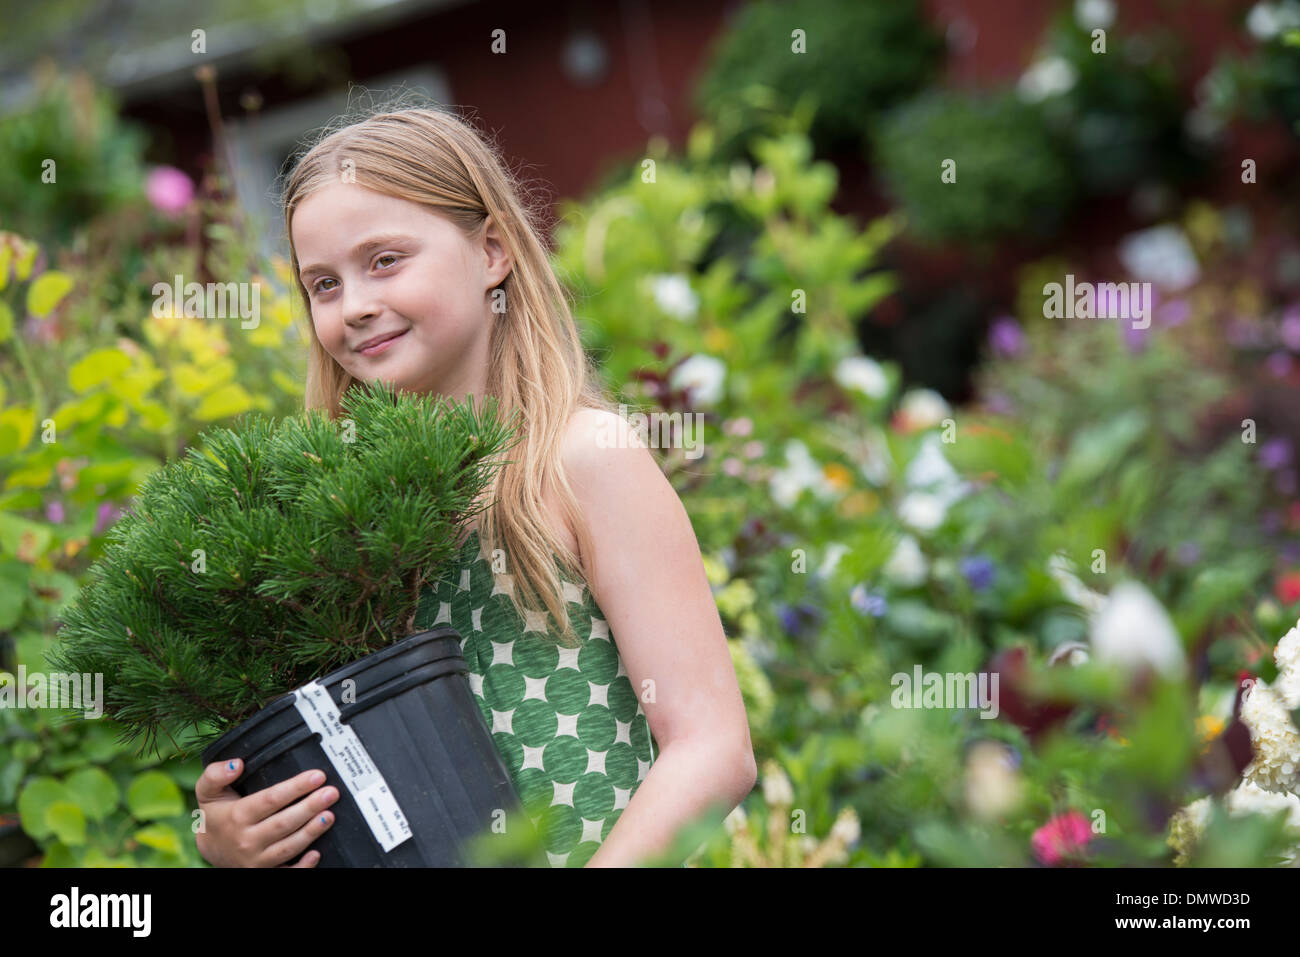 An organic flower plant nursery. A young girl carrying a plant in a pot. - Stock Image